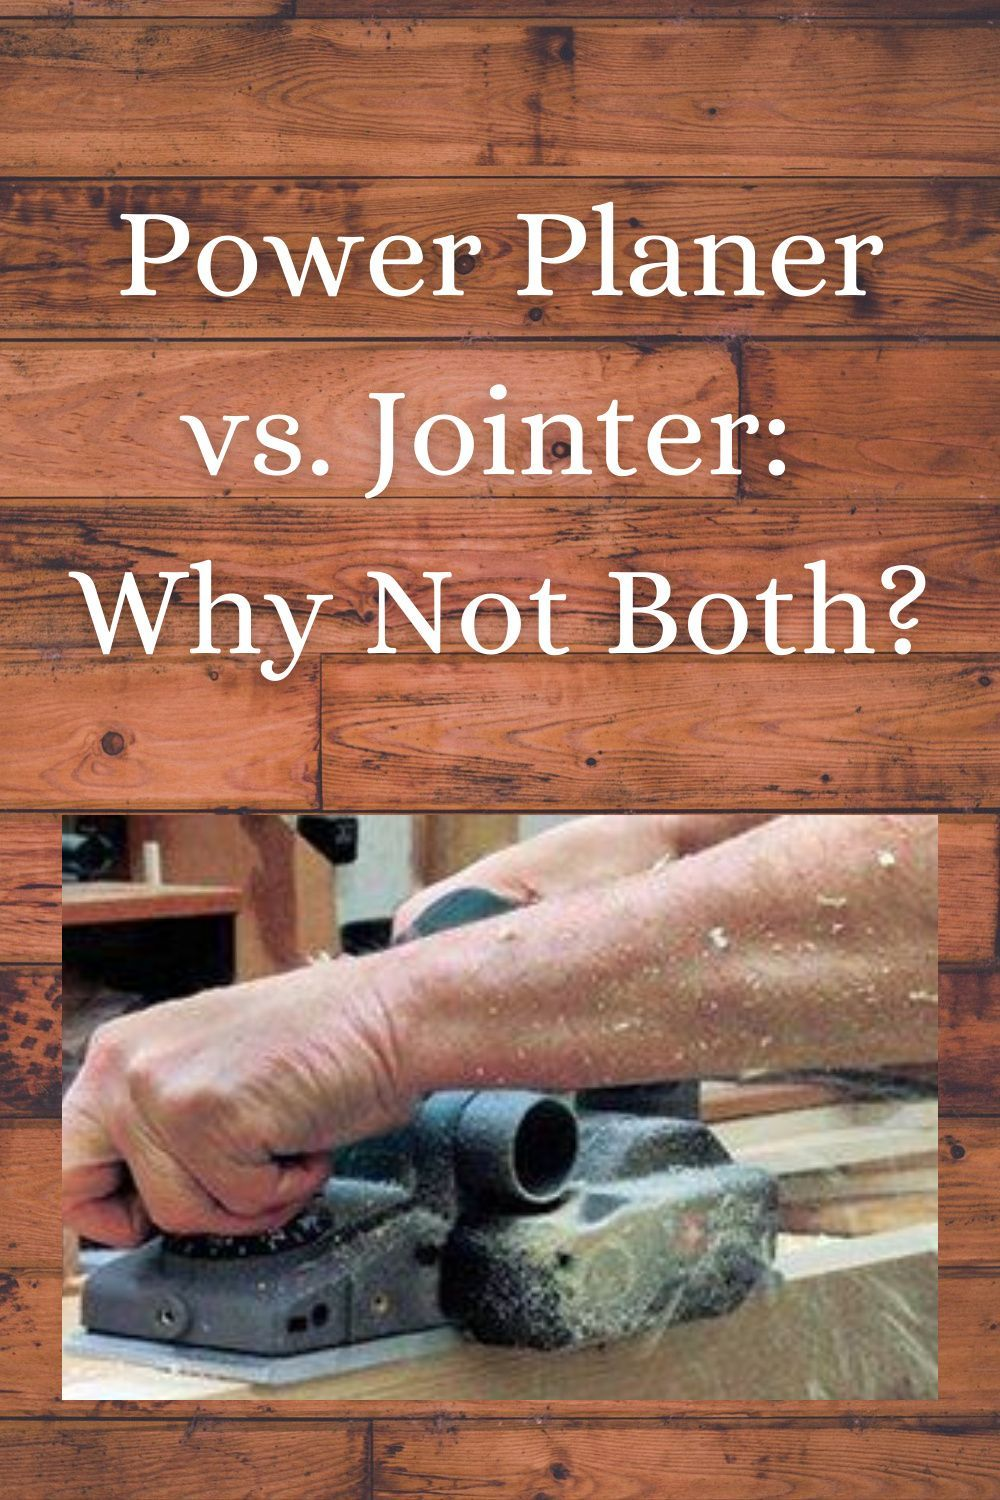 Power Planer Vs Jointer Some Planers Also Function As Jointers In 2020 Woodworking Hand Tools Planers Power